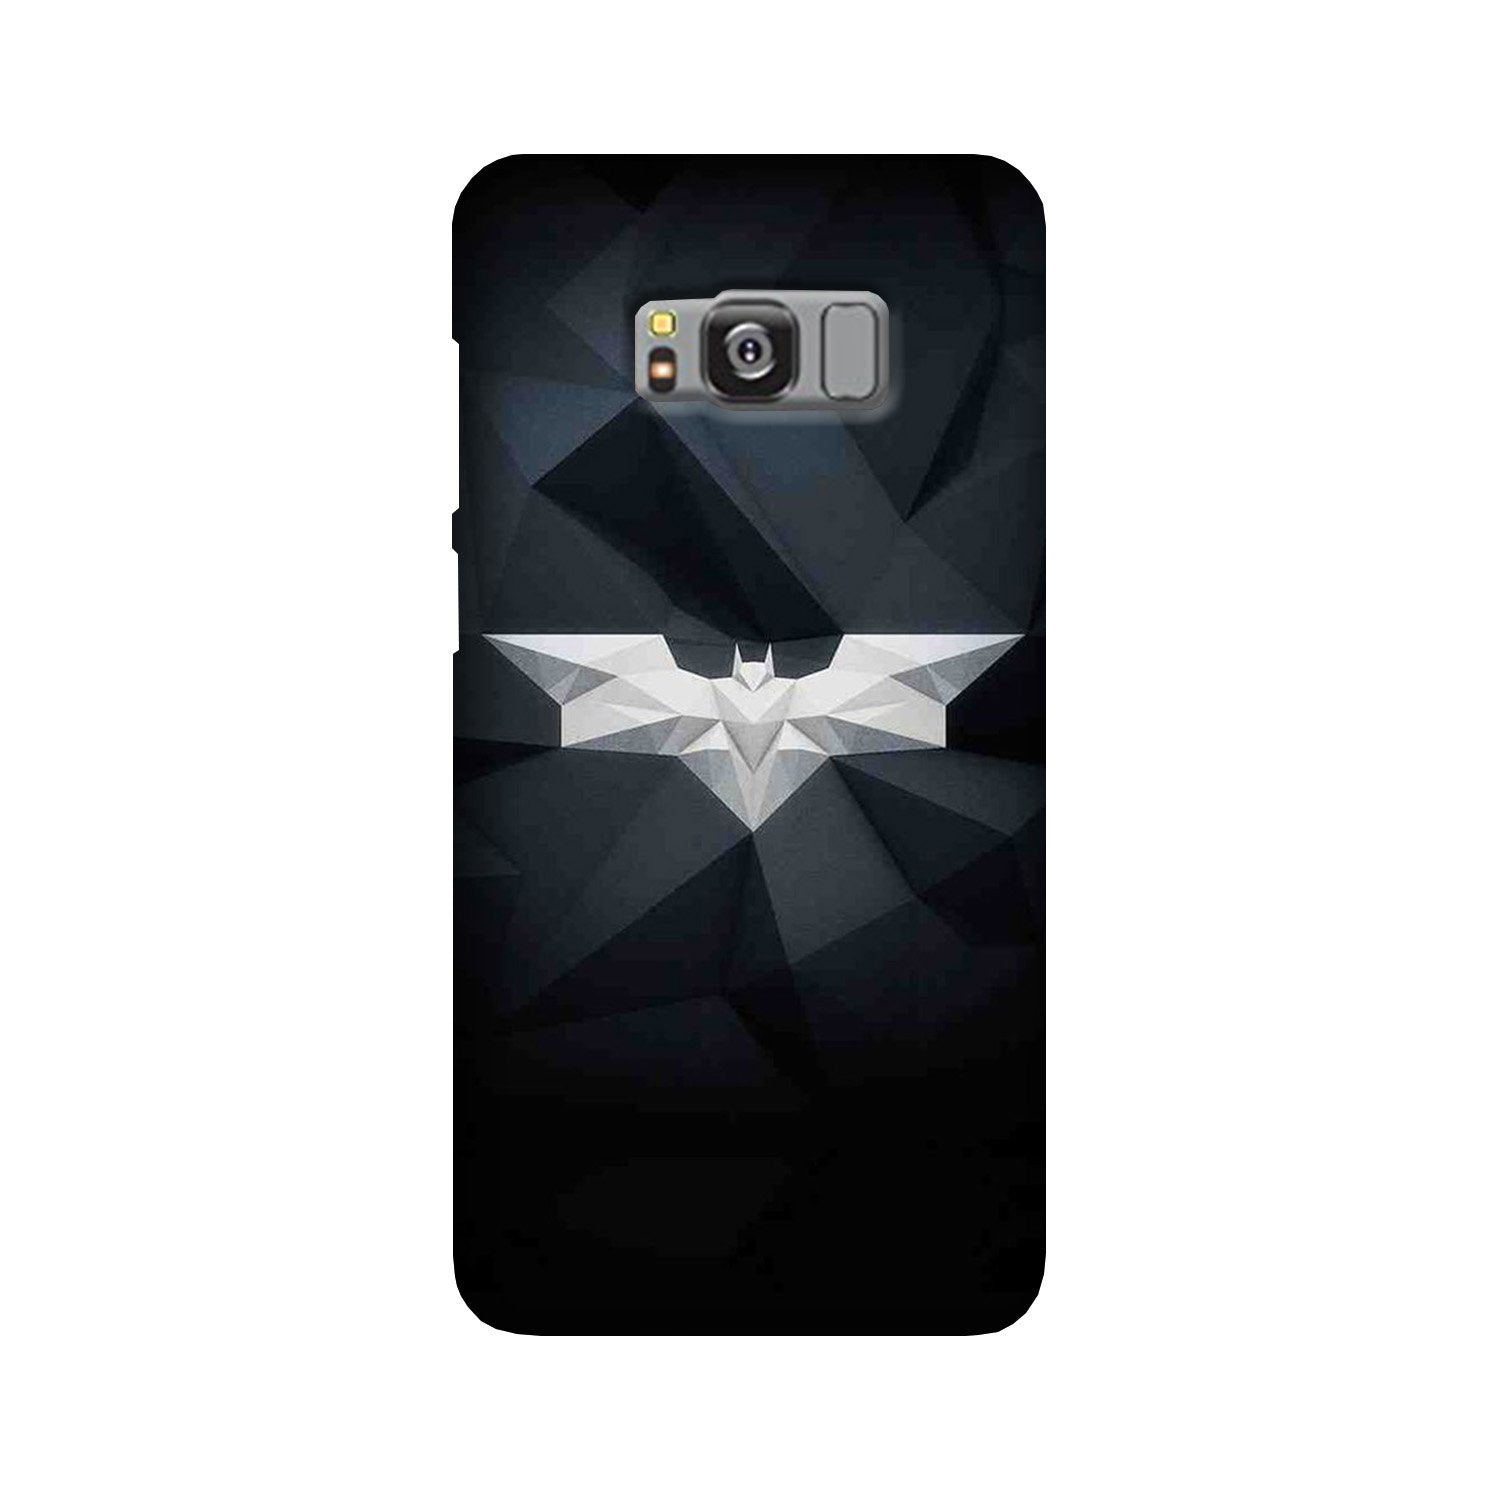 Batman Case for Galaxy S8 Plus